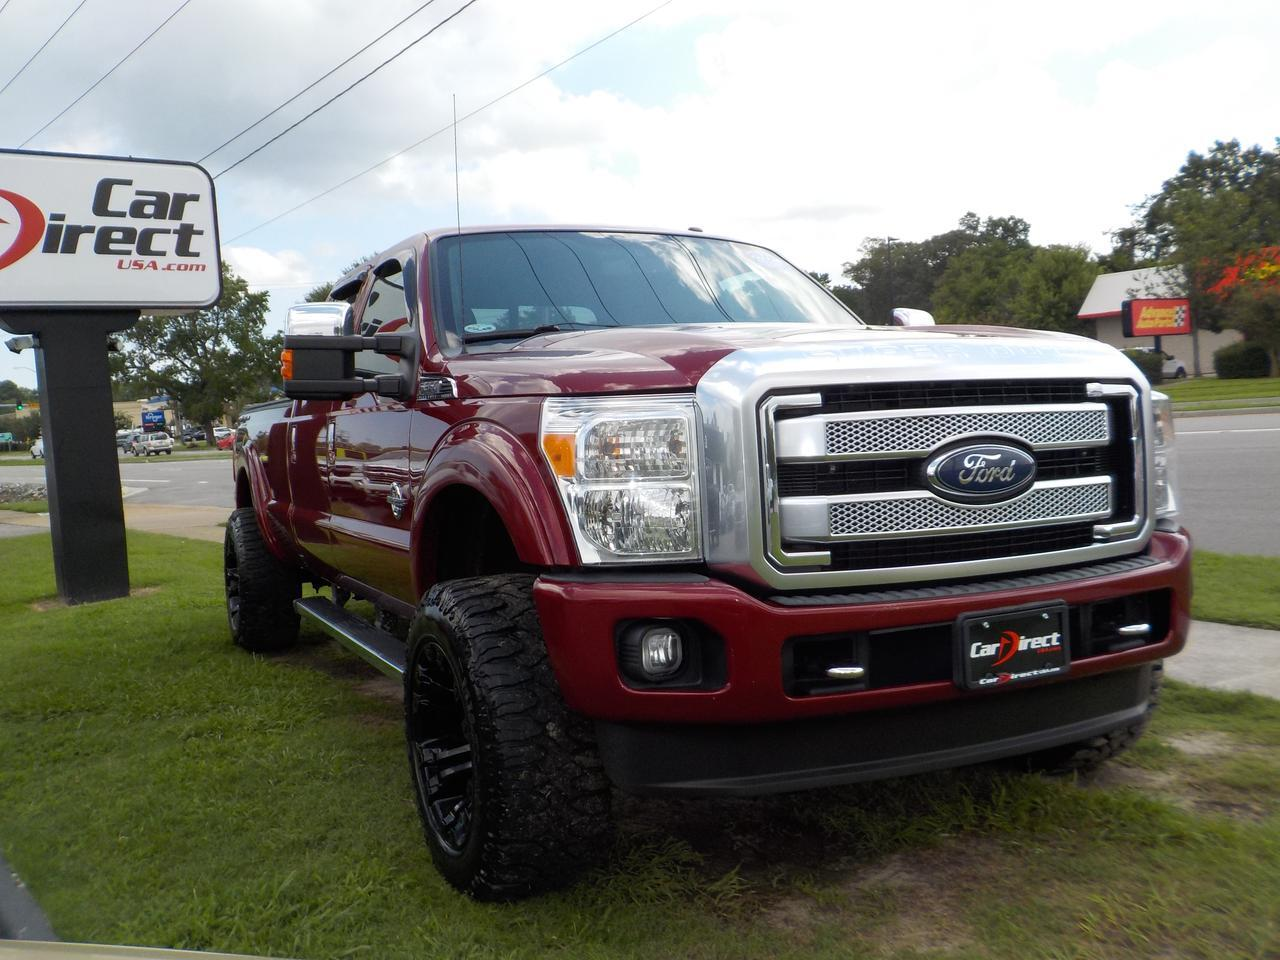 2014 FORD F-350 PLATINUM SUPER DUTY 6.7L POWER STROKE DIESEL 4X4, LONG BED, LEATHER, ROOF, NAVI, LIFTED, GORGEOUS!!! Virginia Beach VA